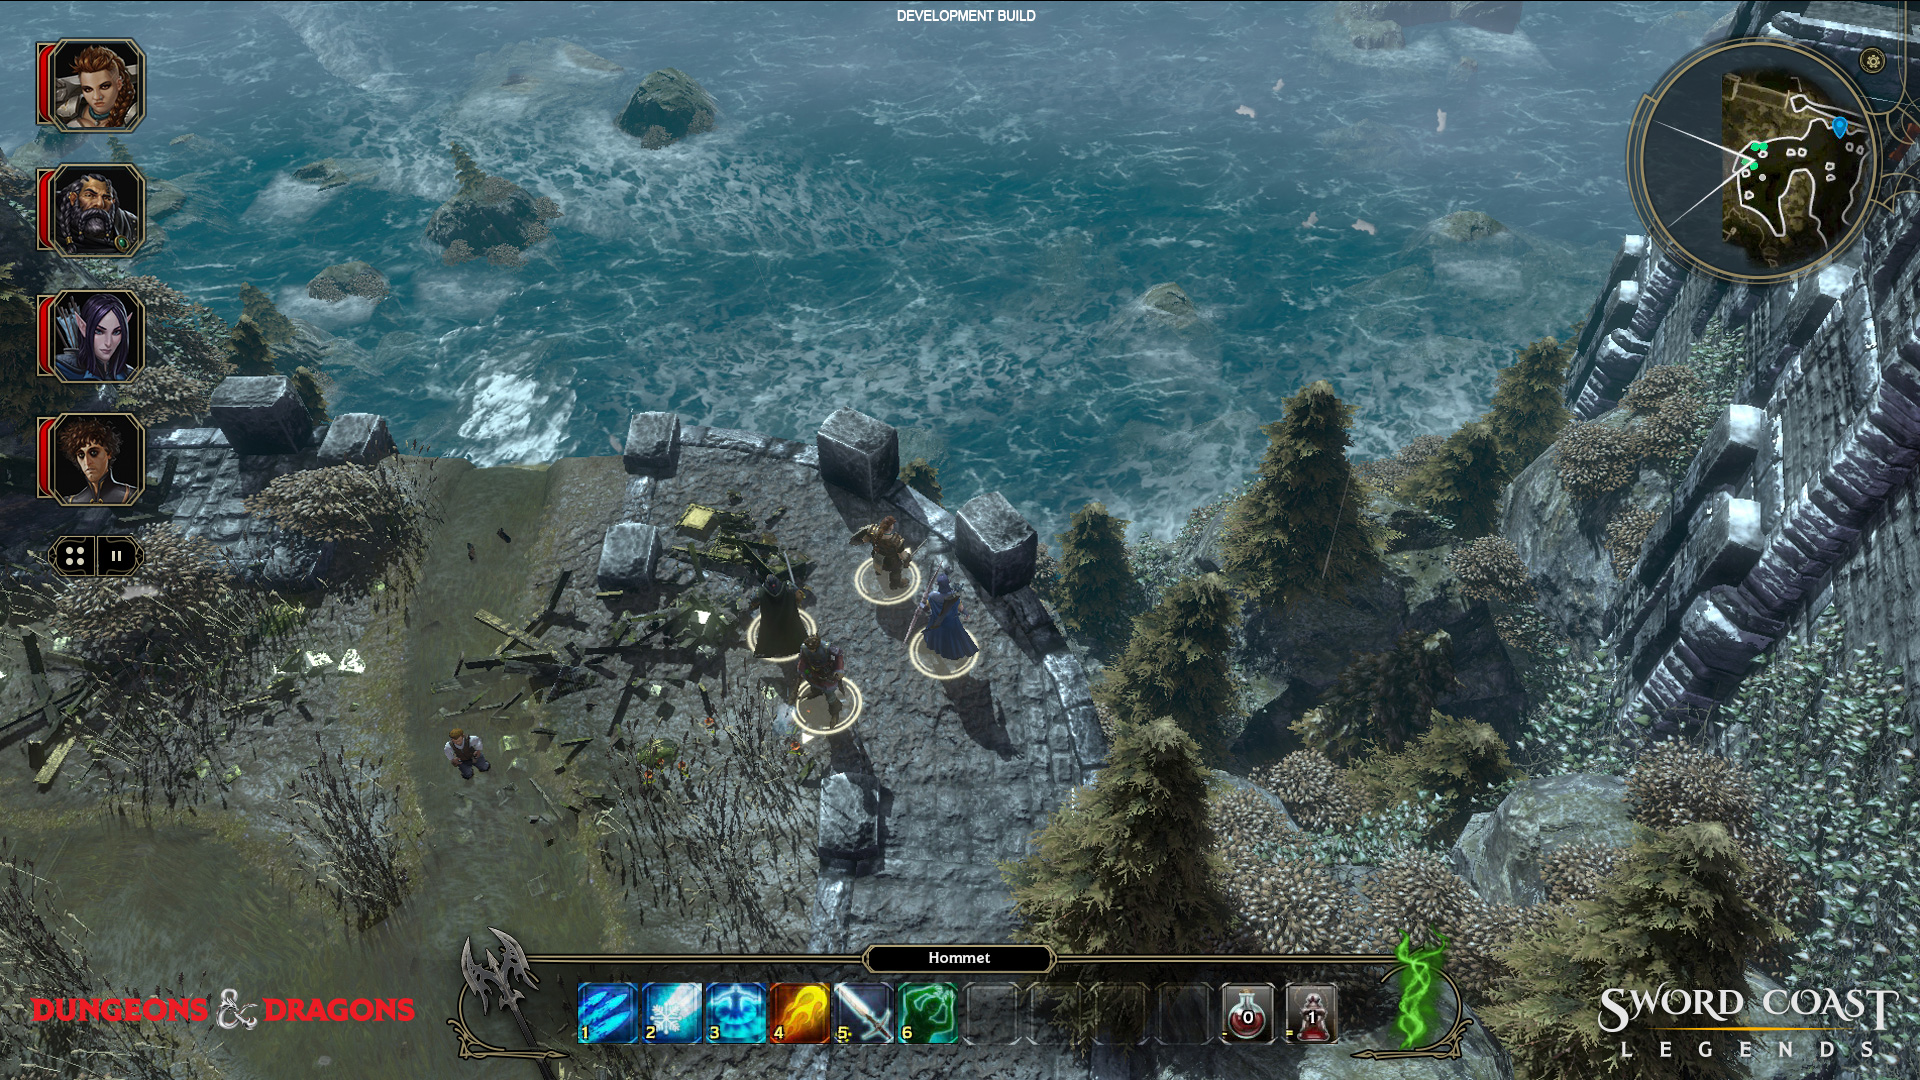 Sword Coast Legends image 1